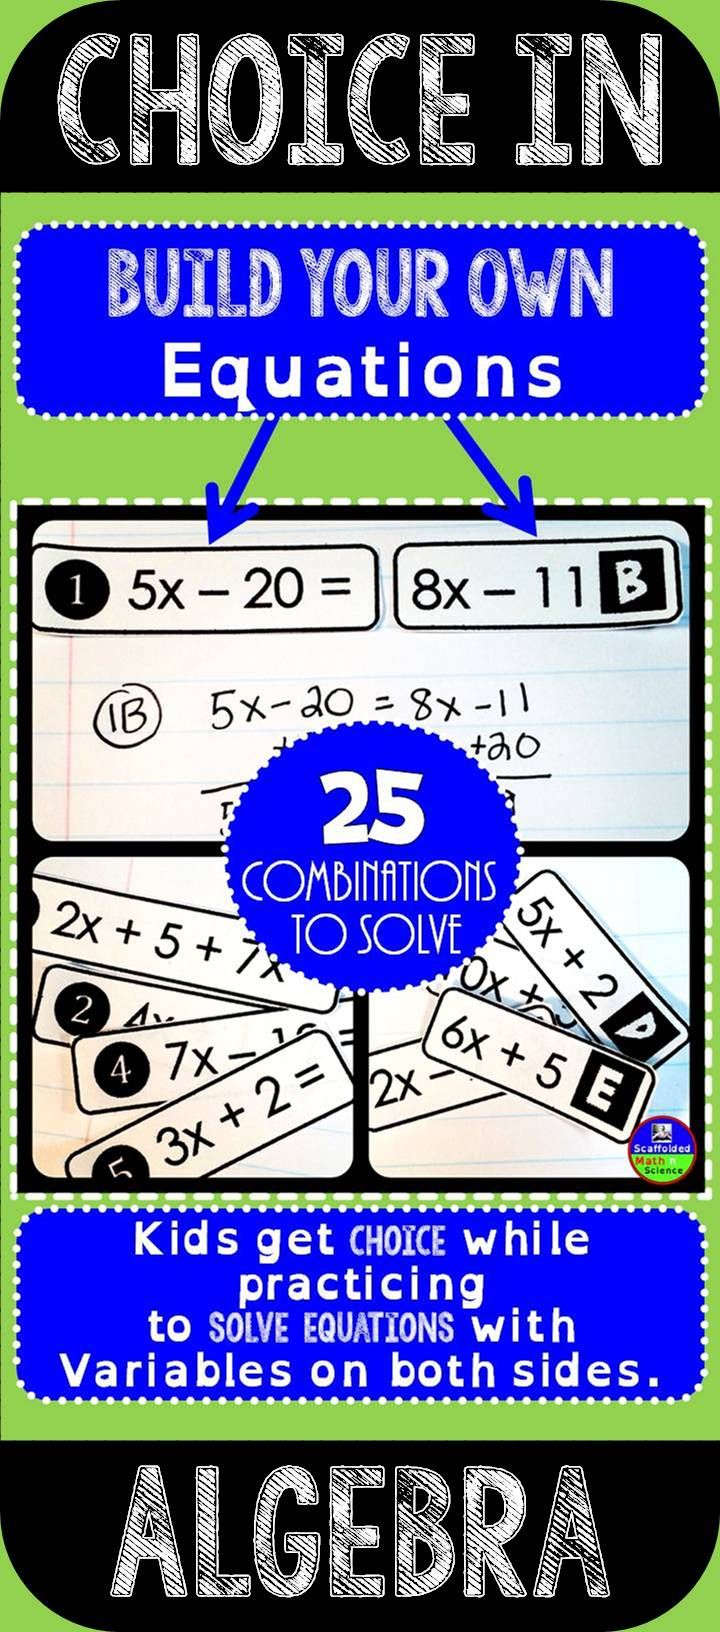 Kids love choice in Algebra. I have found that kids are more relaxed and get more work done with a sense of choice in the activities they are given. They are also more accurate with their work when given a choice because there is more buy-in. Here they get to build their own equations with variables on both sides to solve. (Freebie linked)